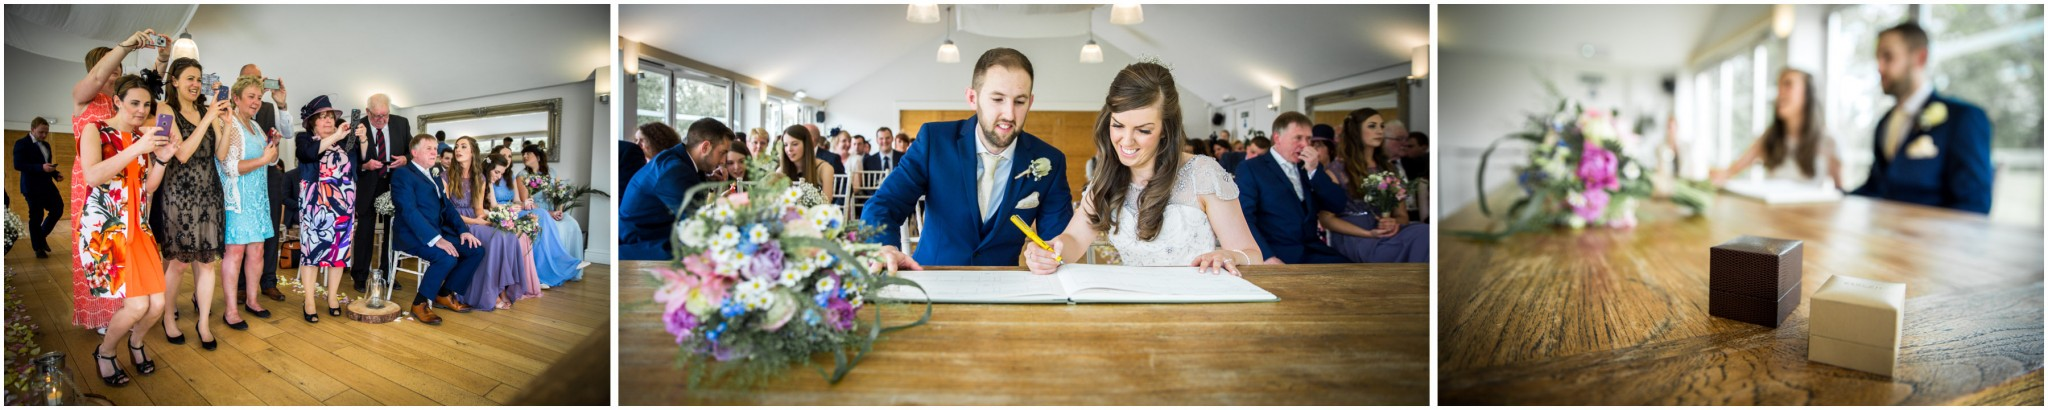 Wasing Park Wedding Photography signing the register 002